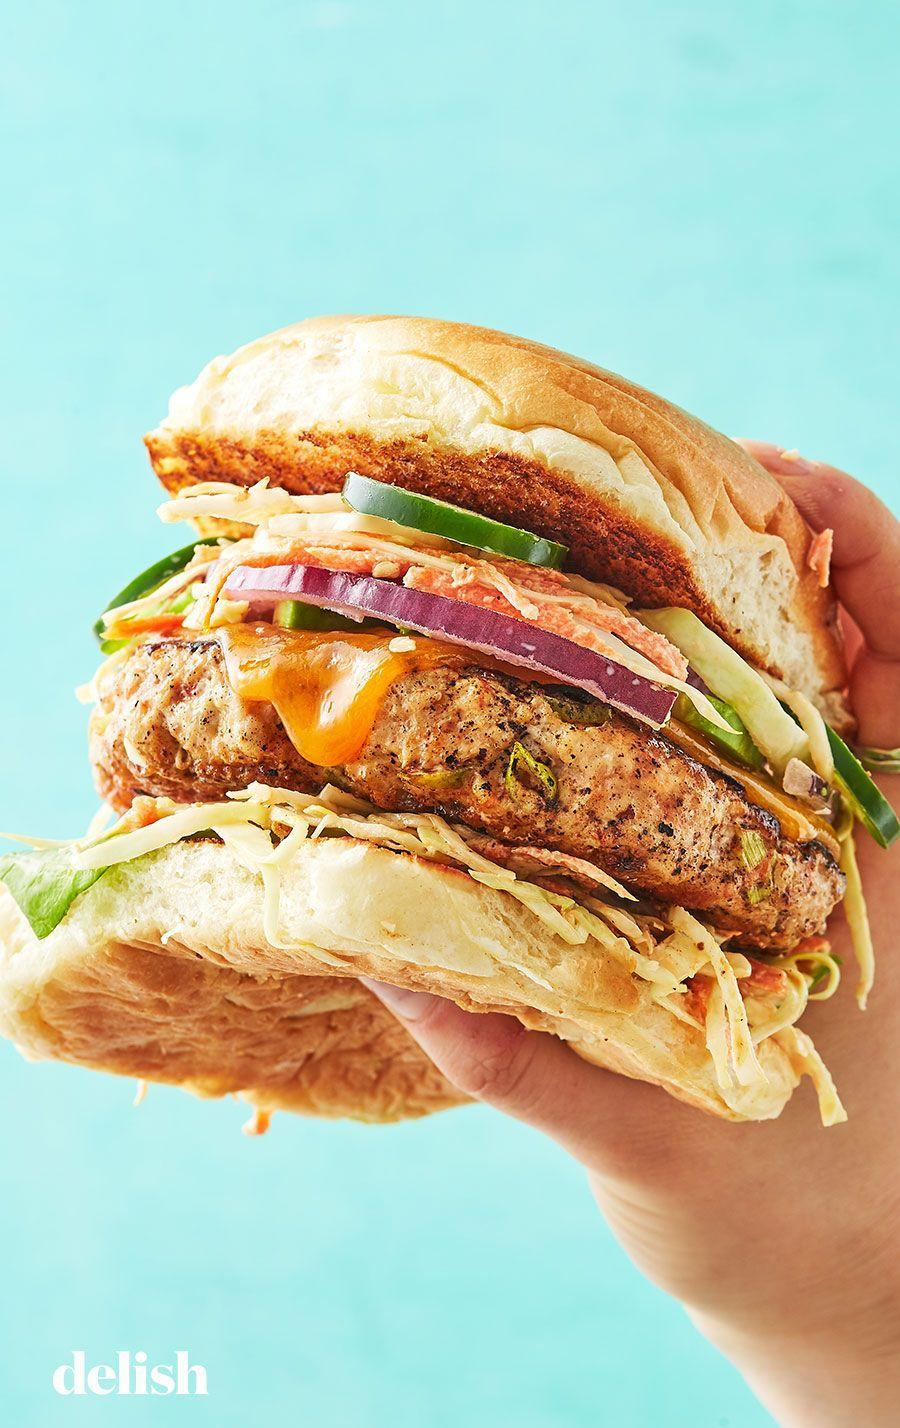 "<p>The perfect I'm-bored-of-grilled-chicken fix.</p><p>Get the recipe from <a href=""https://www.delish.com/cooking/recipe-ideas/recipes/a13513/chicken-burgers-recipe-mslo1010/"" rel=""nofollow noopener"" target=""_blank"" data-ylk=""slk:Delish"" class=""link rapid-noclick-resp"">Delish</a>.<br></p>"